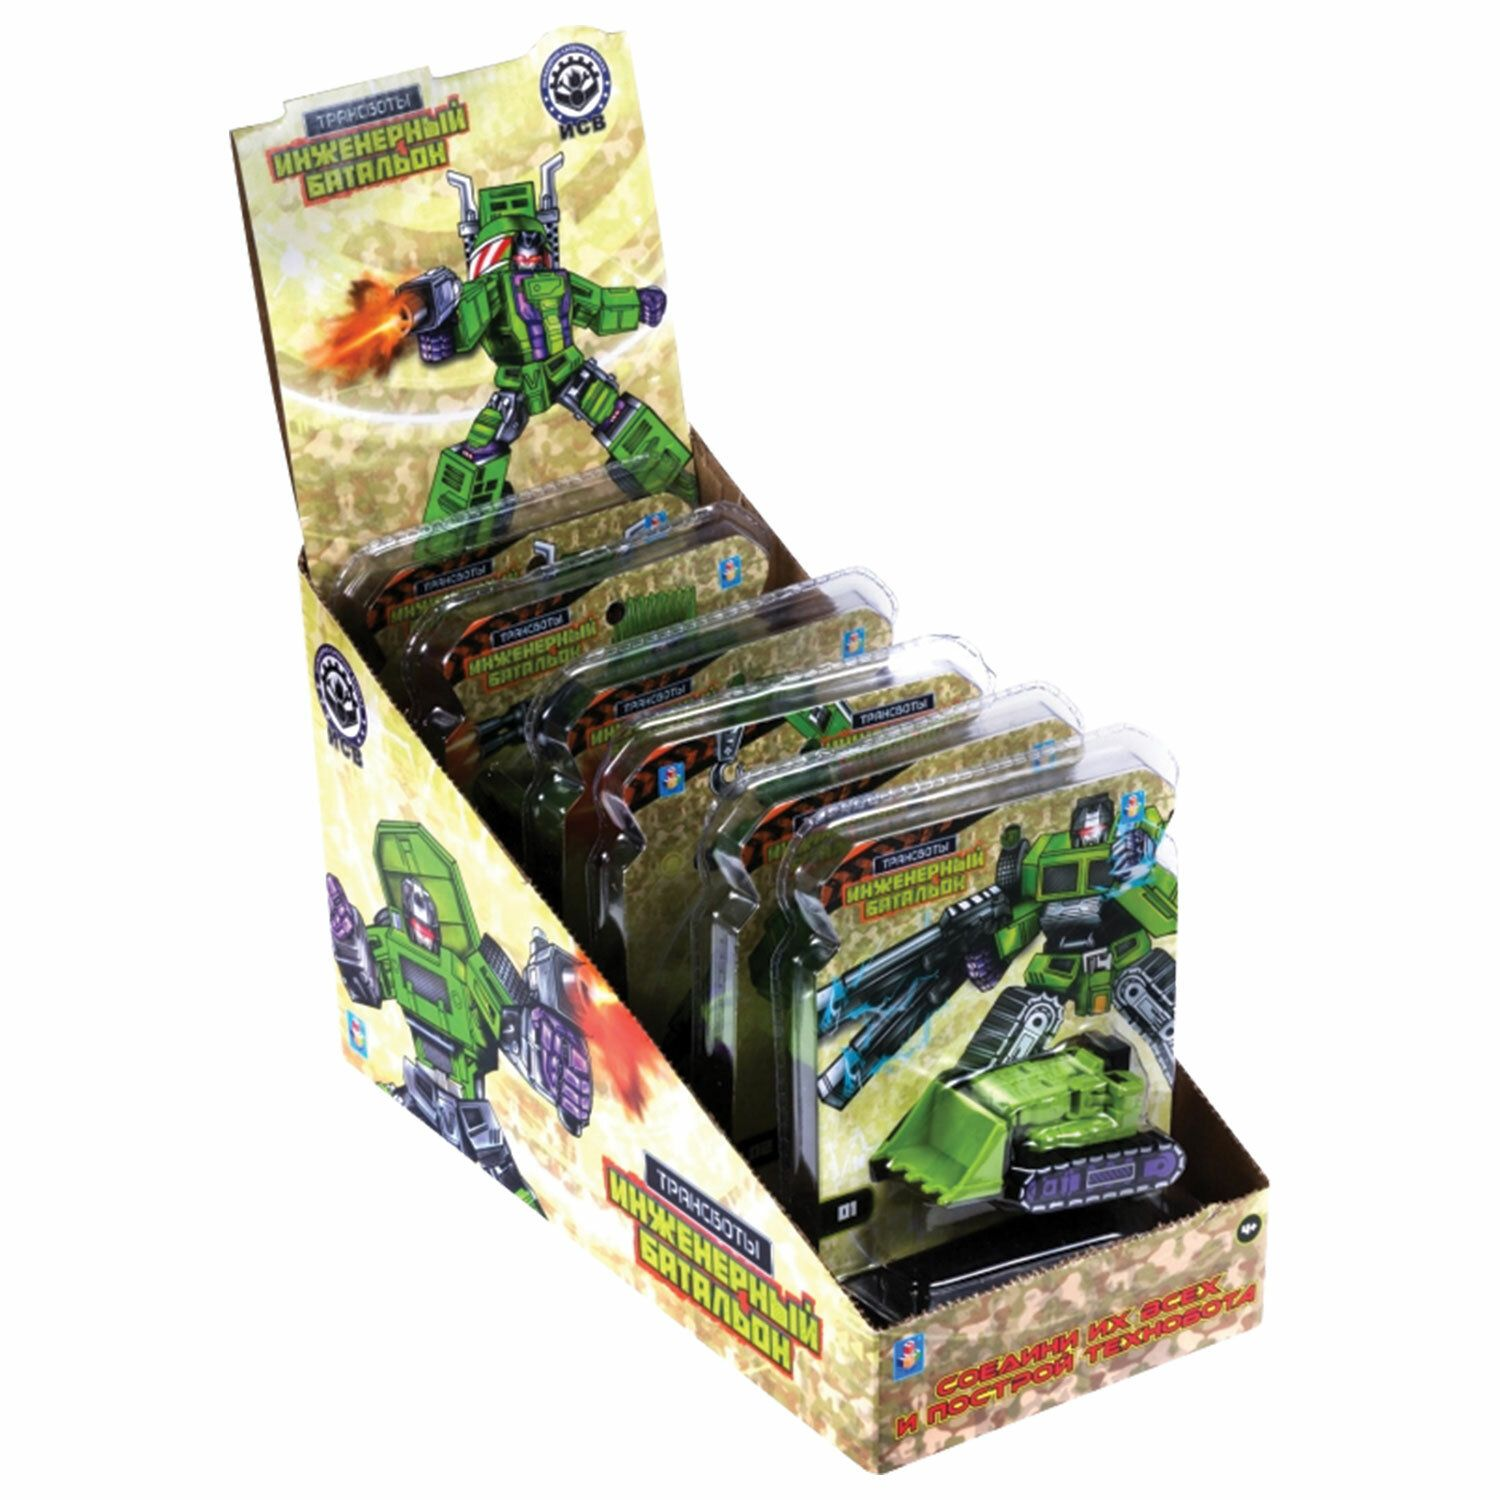 """Transbot's Transformer Toy """"Engineering Battalion,"""" assorted, display, 1TOY"""